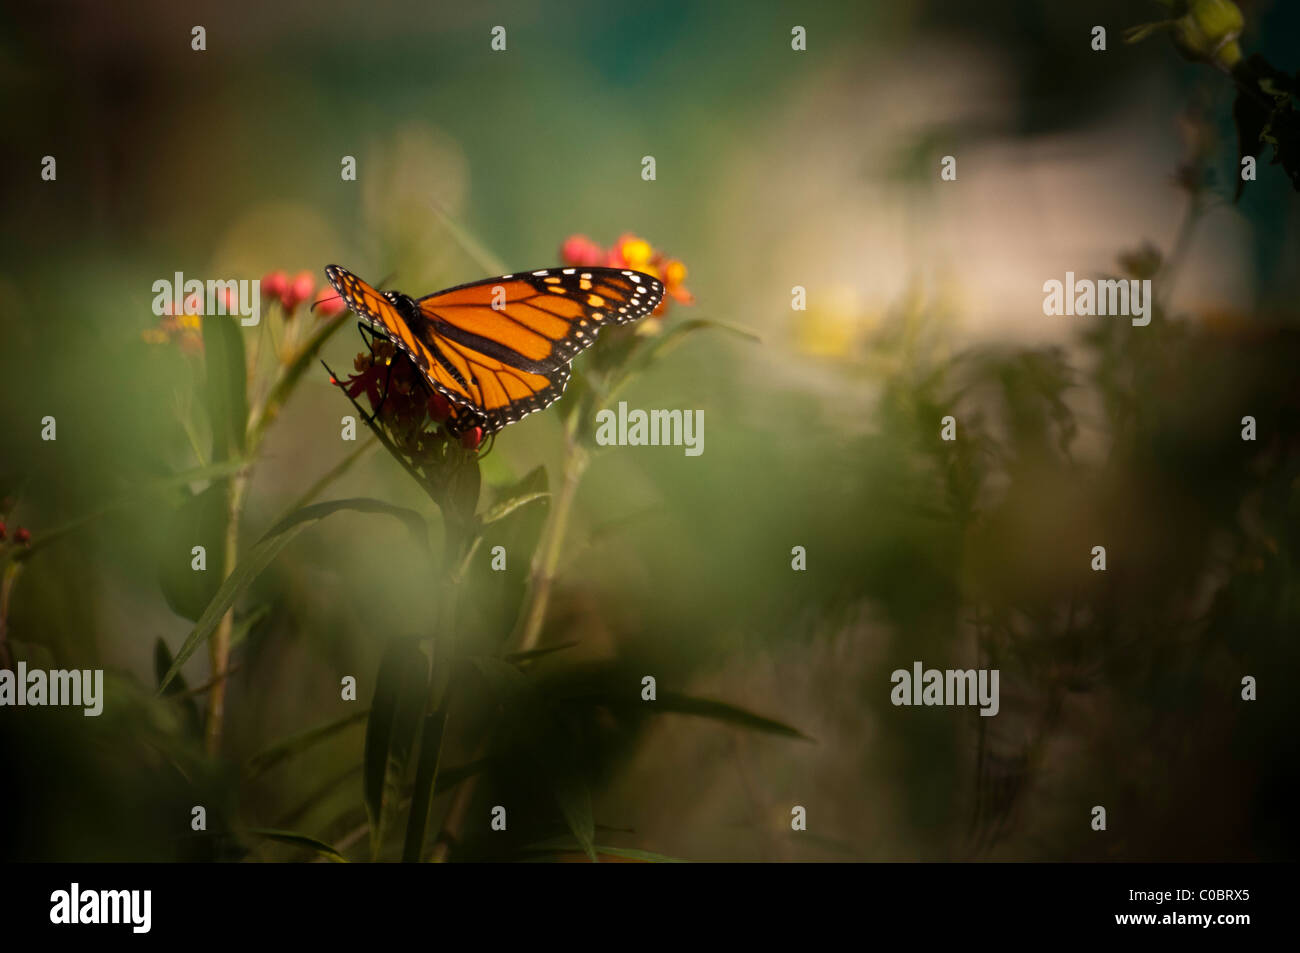 Monarch Butterflies Stock Photos & Monarch Butterflies Stock Images ...